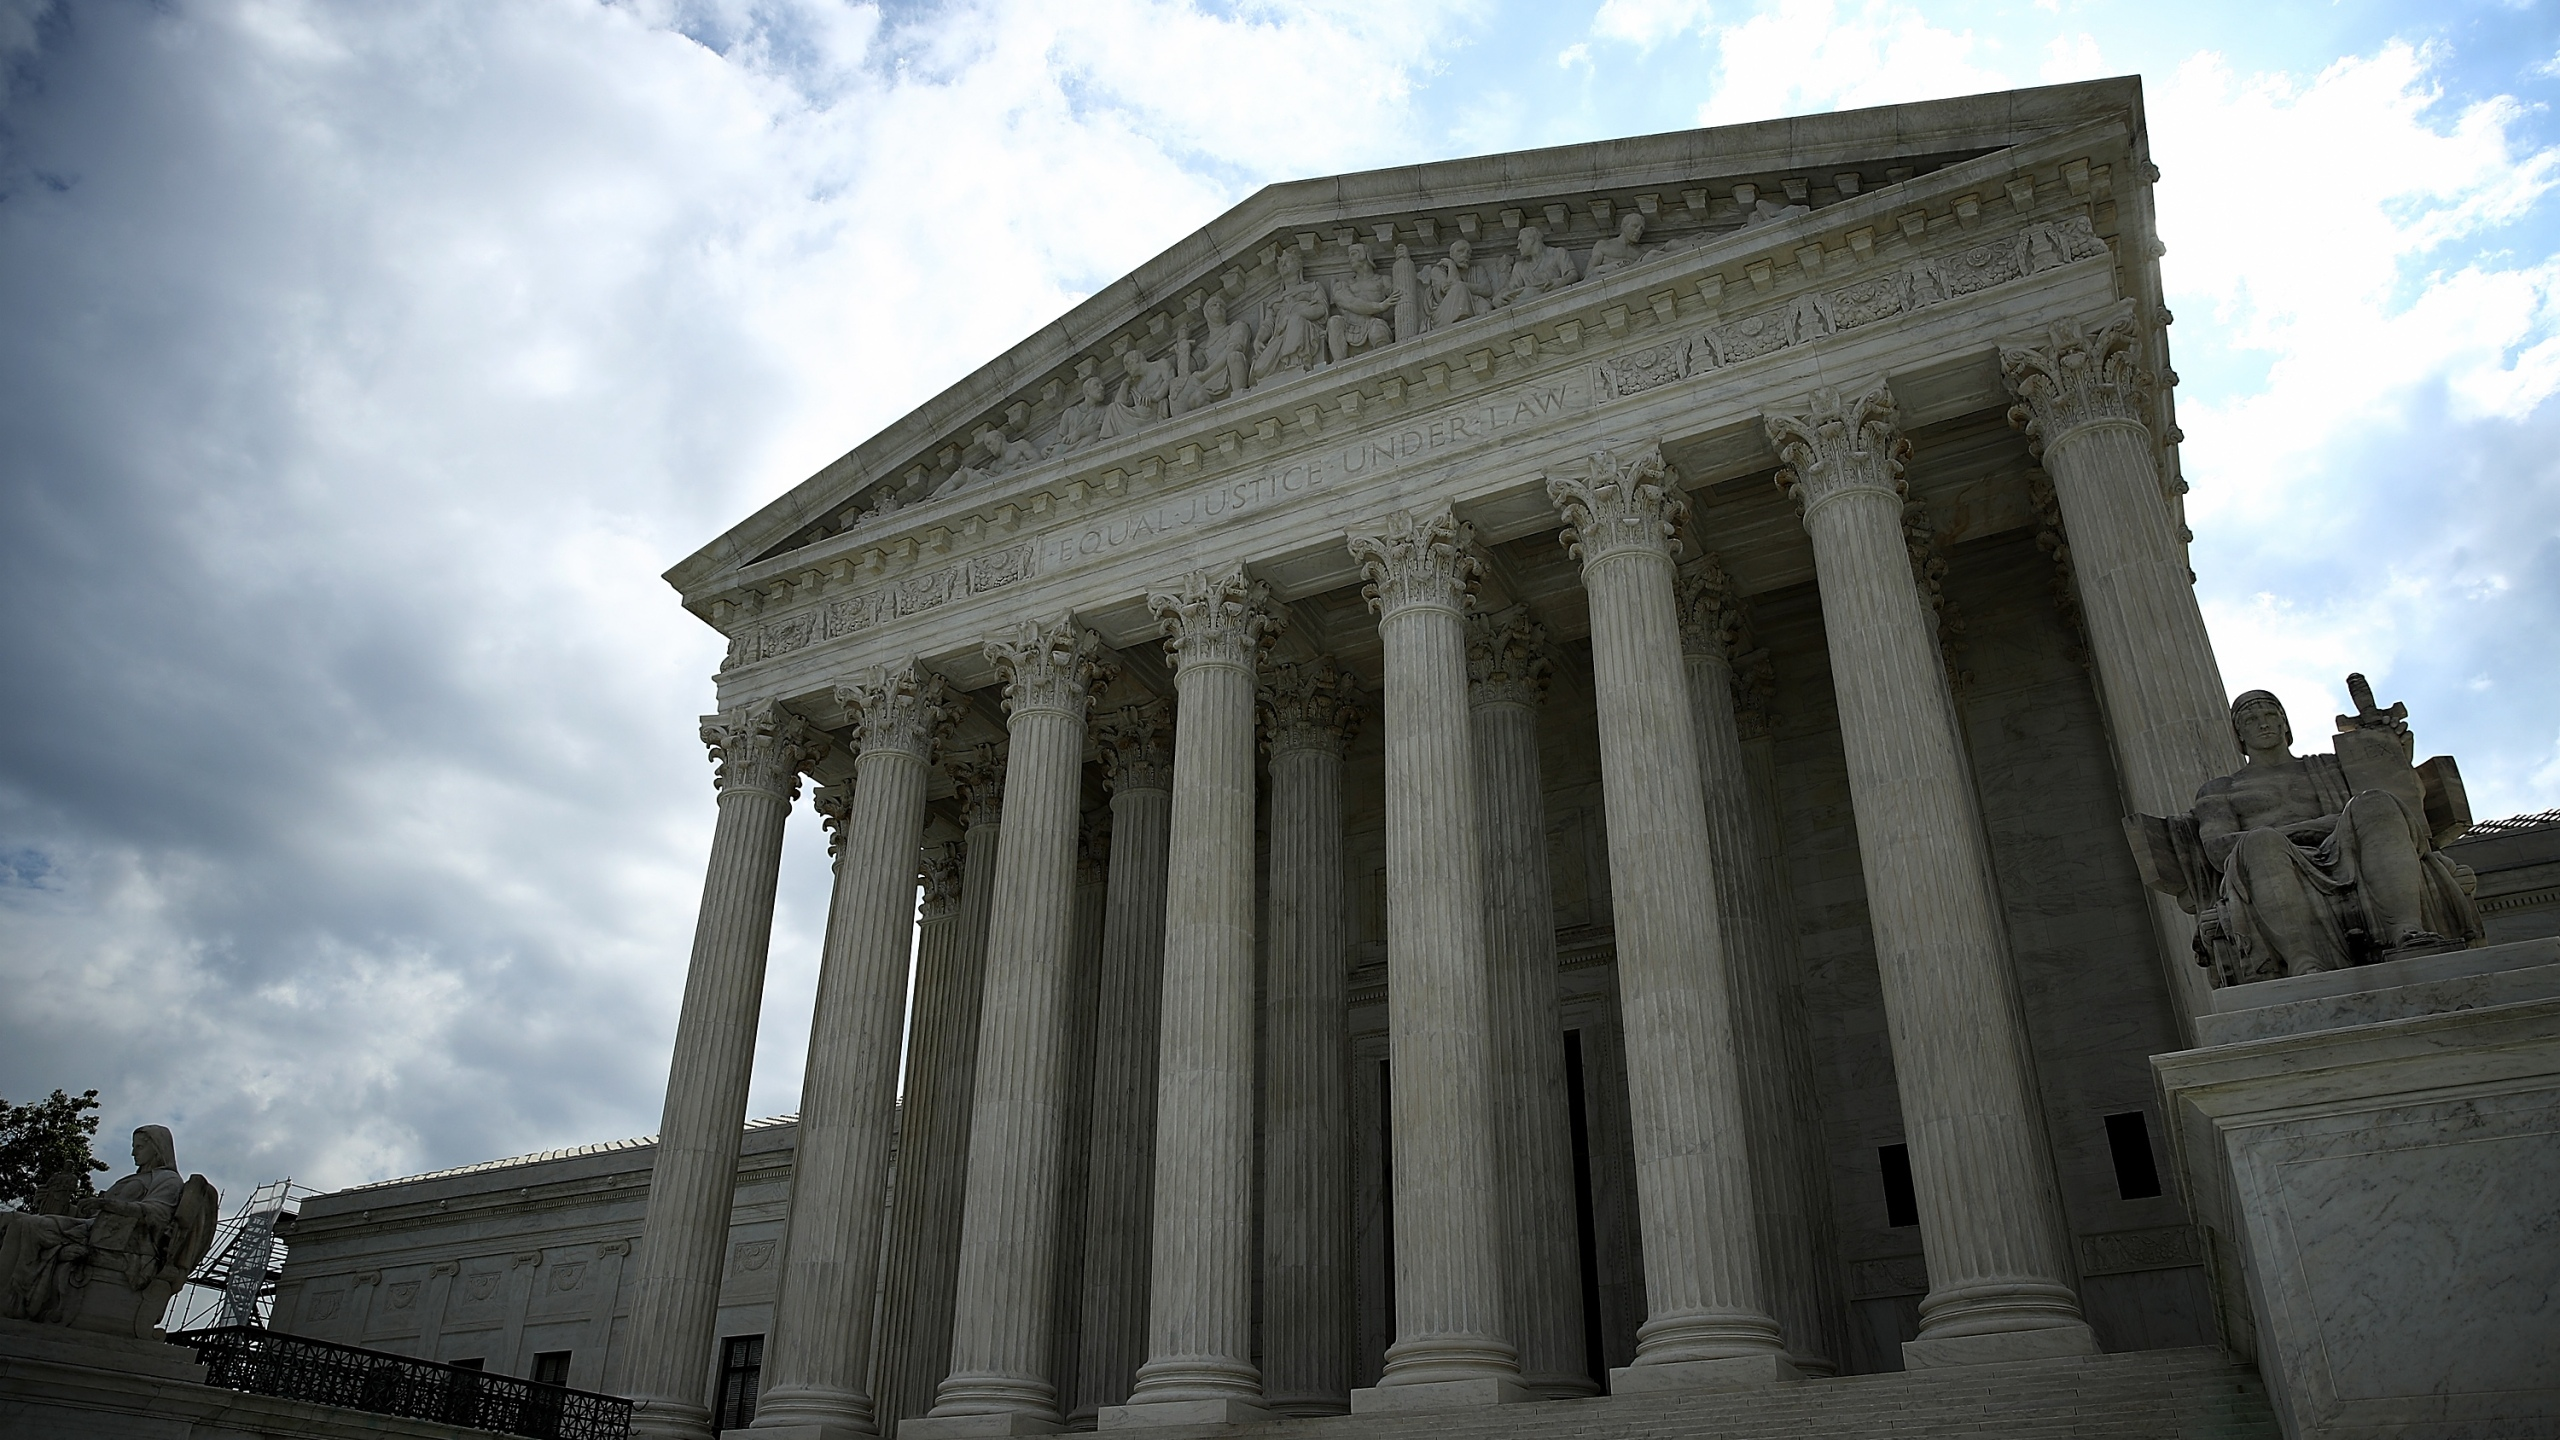 Picture of the Supreme Court building in Washington D.C.